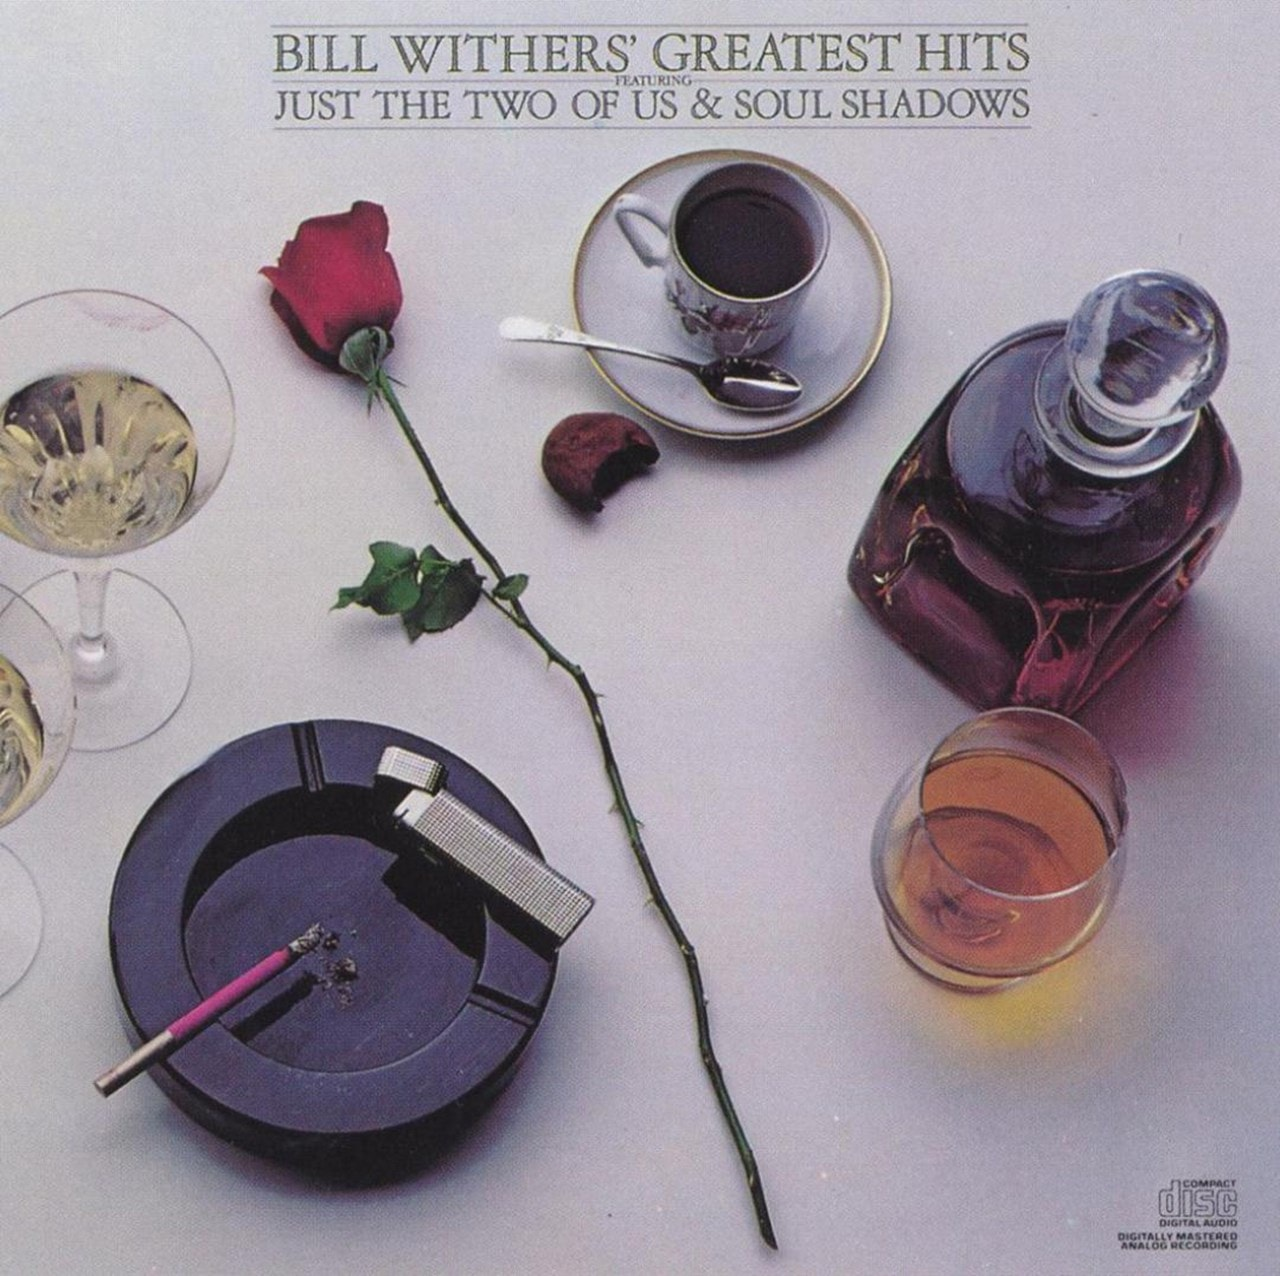 Bill Withers' Greatest Hits - 1